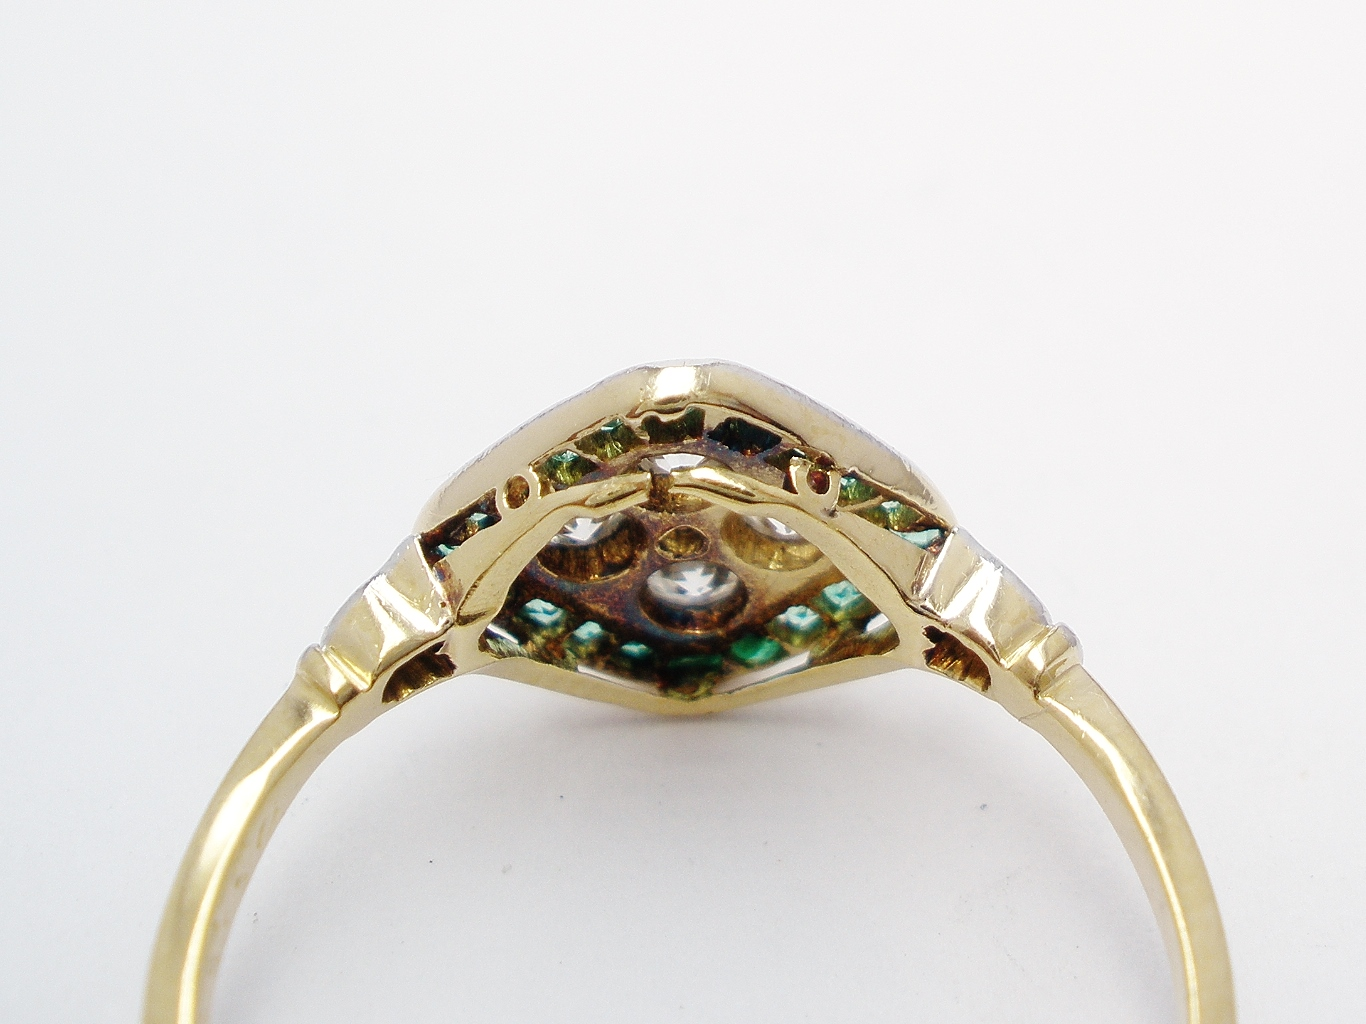 An emerald and diamond cluster, finely made in 18ct. yellow gold & topped in platinum very worn and broken on underside.